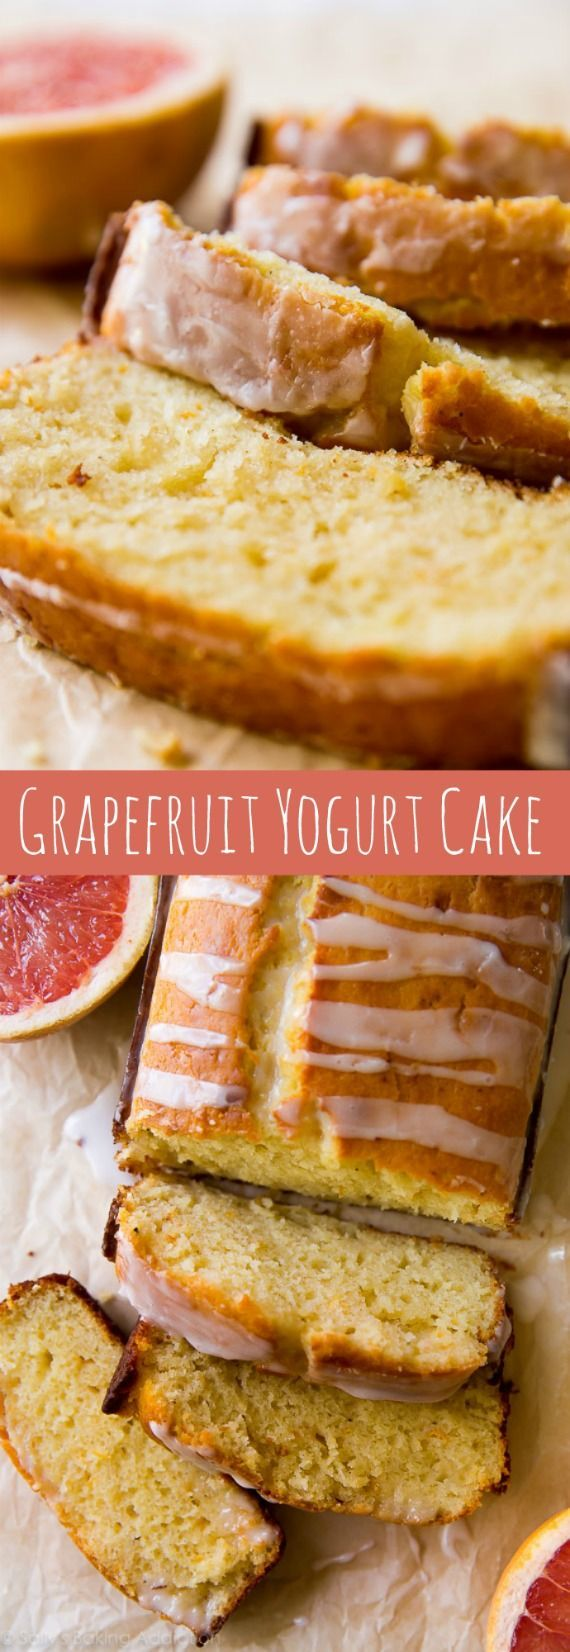 Unbelievably moist grapefruit loaf cake made with Greek yogurt and fresh grapefruit juice! The flavor and texture are both incredible! Recipe on http://sallysbakingaddiction.com